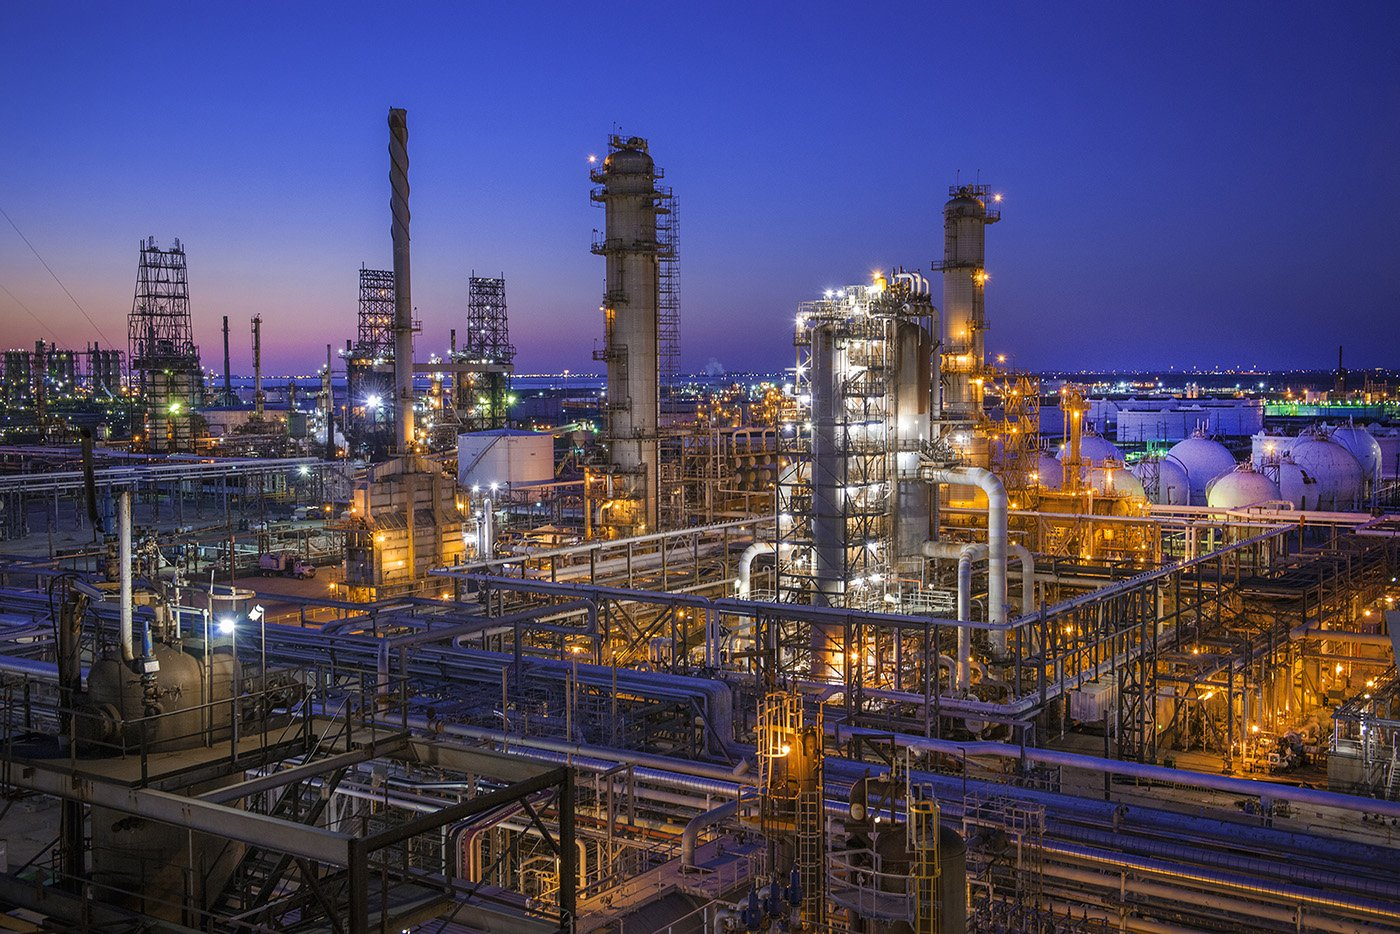 Refineries-Featured Image